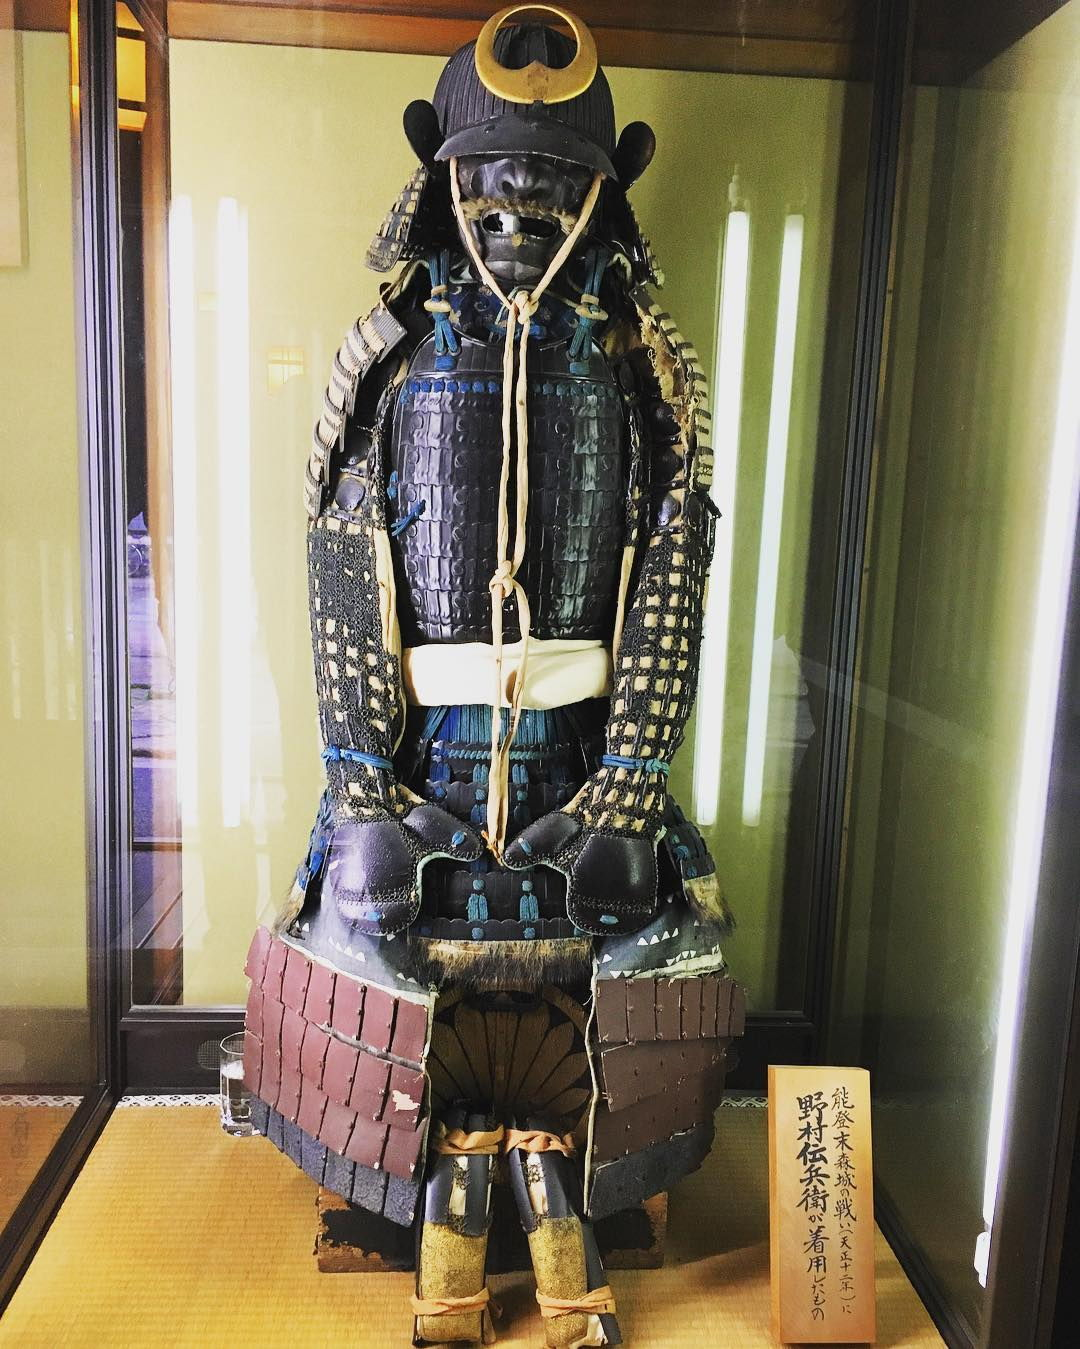 Samurai sculpture in Nomura Family Samurai Home.